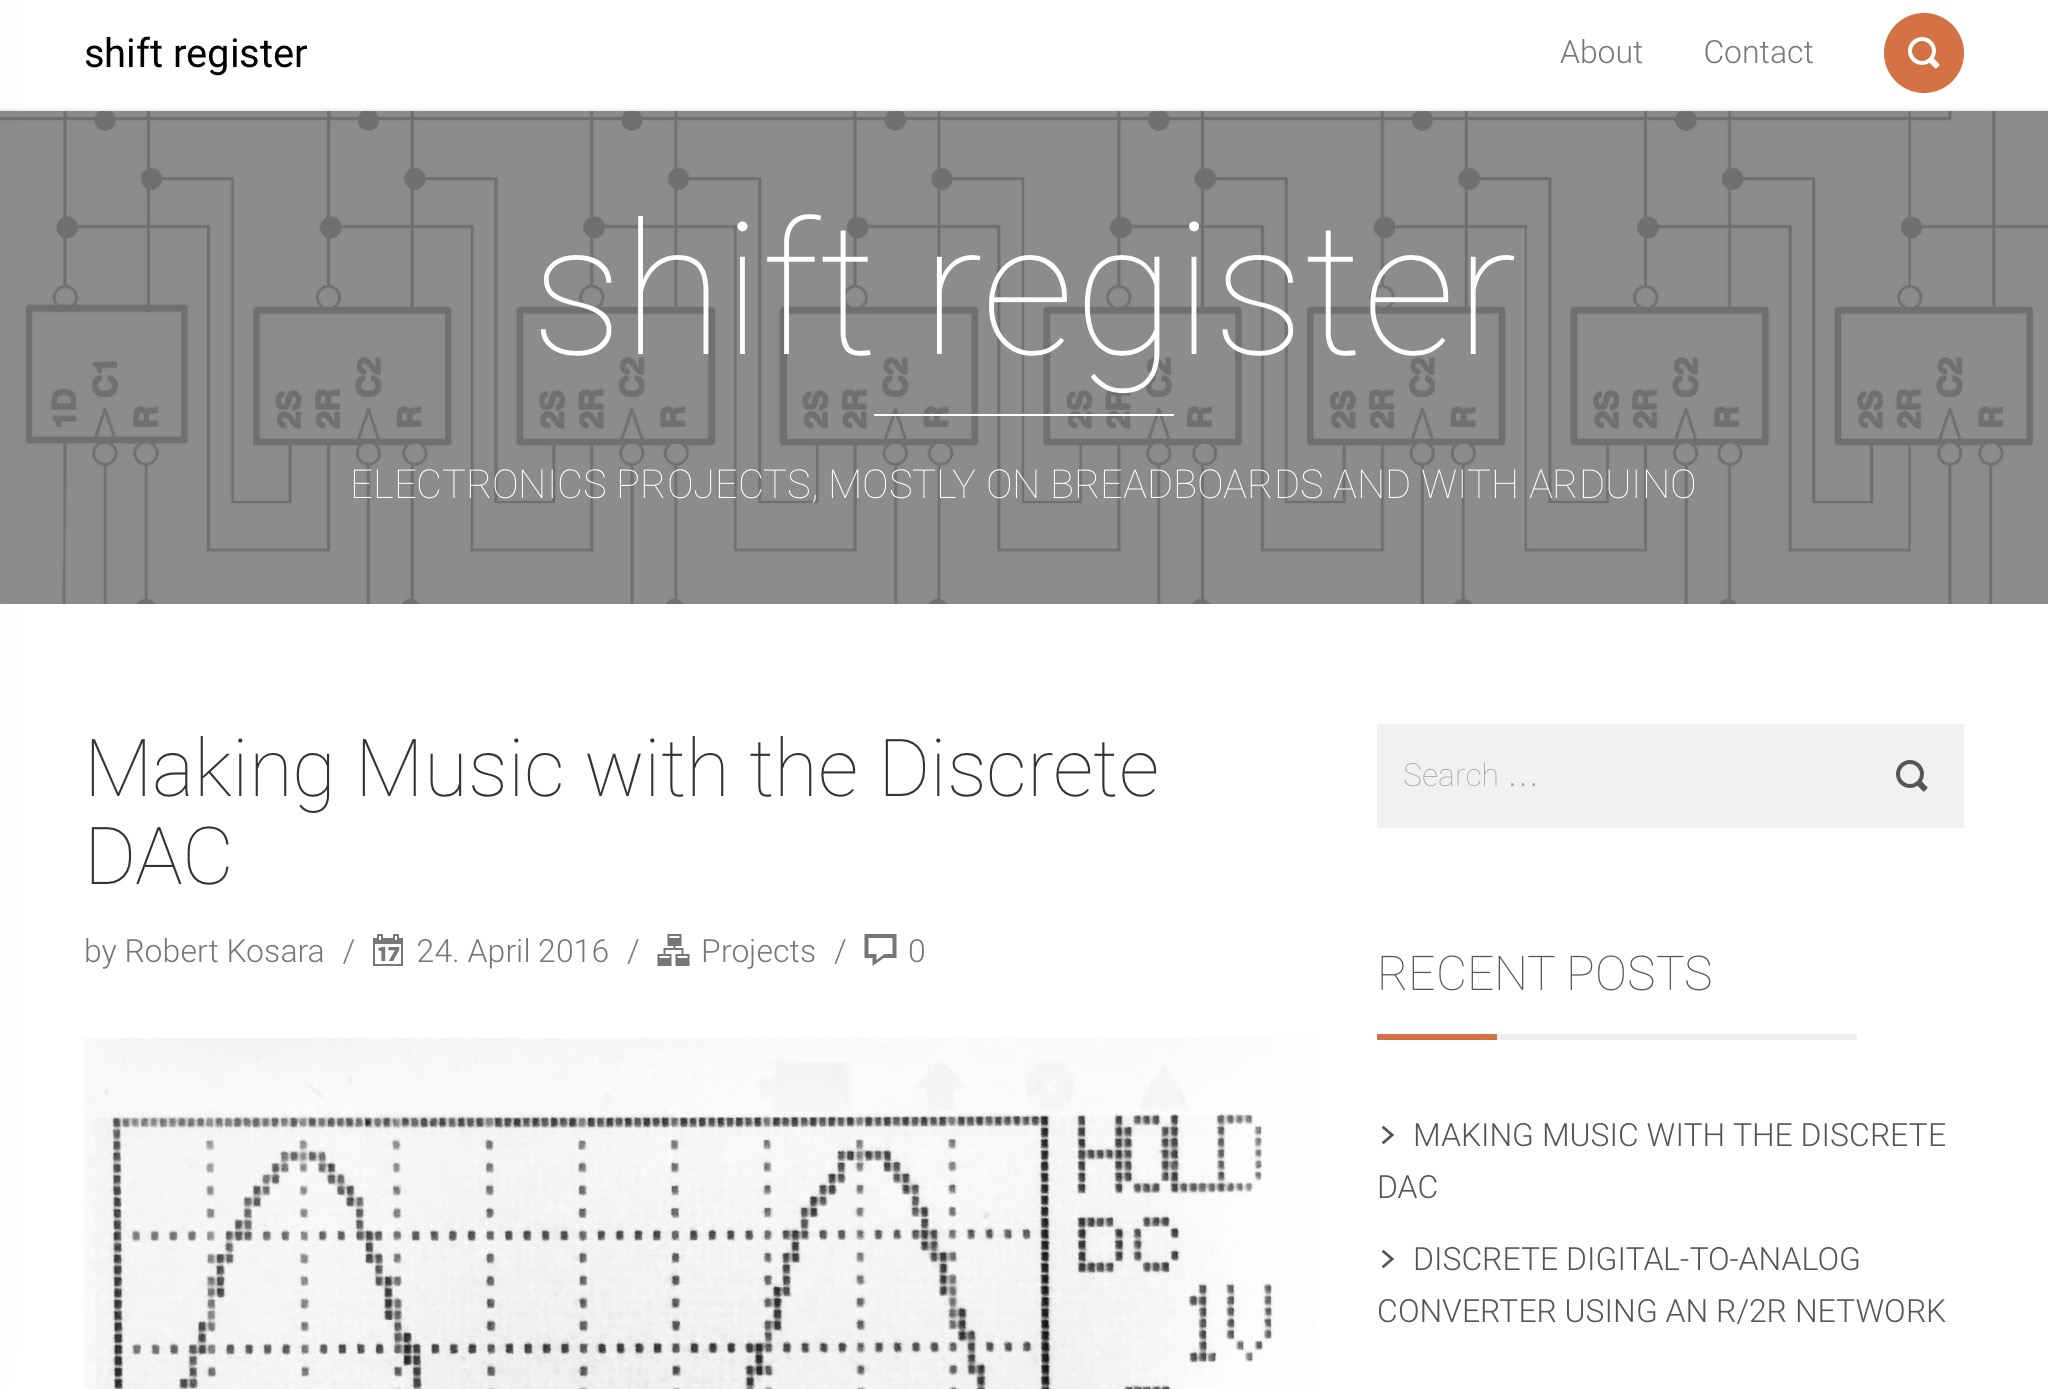 introduction to shift register What is shift register: shift registers are sequential logic circuits, capable of storage and transfer of data they are made up of flip flops which are connected in.